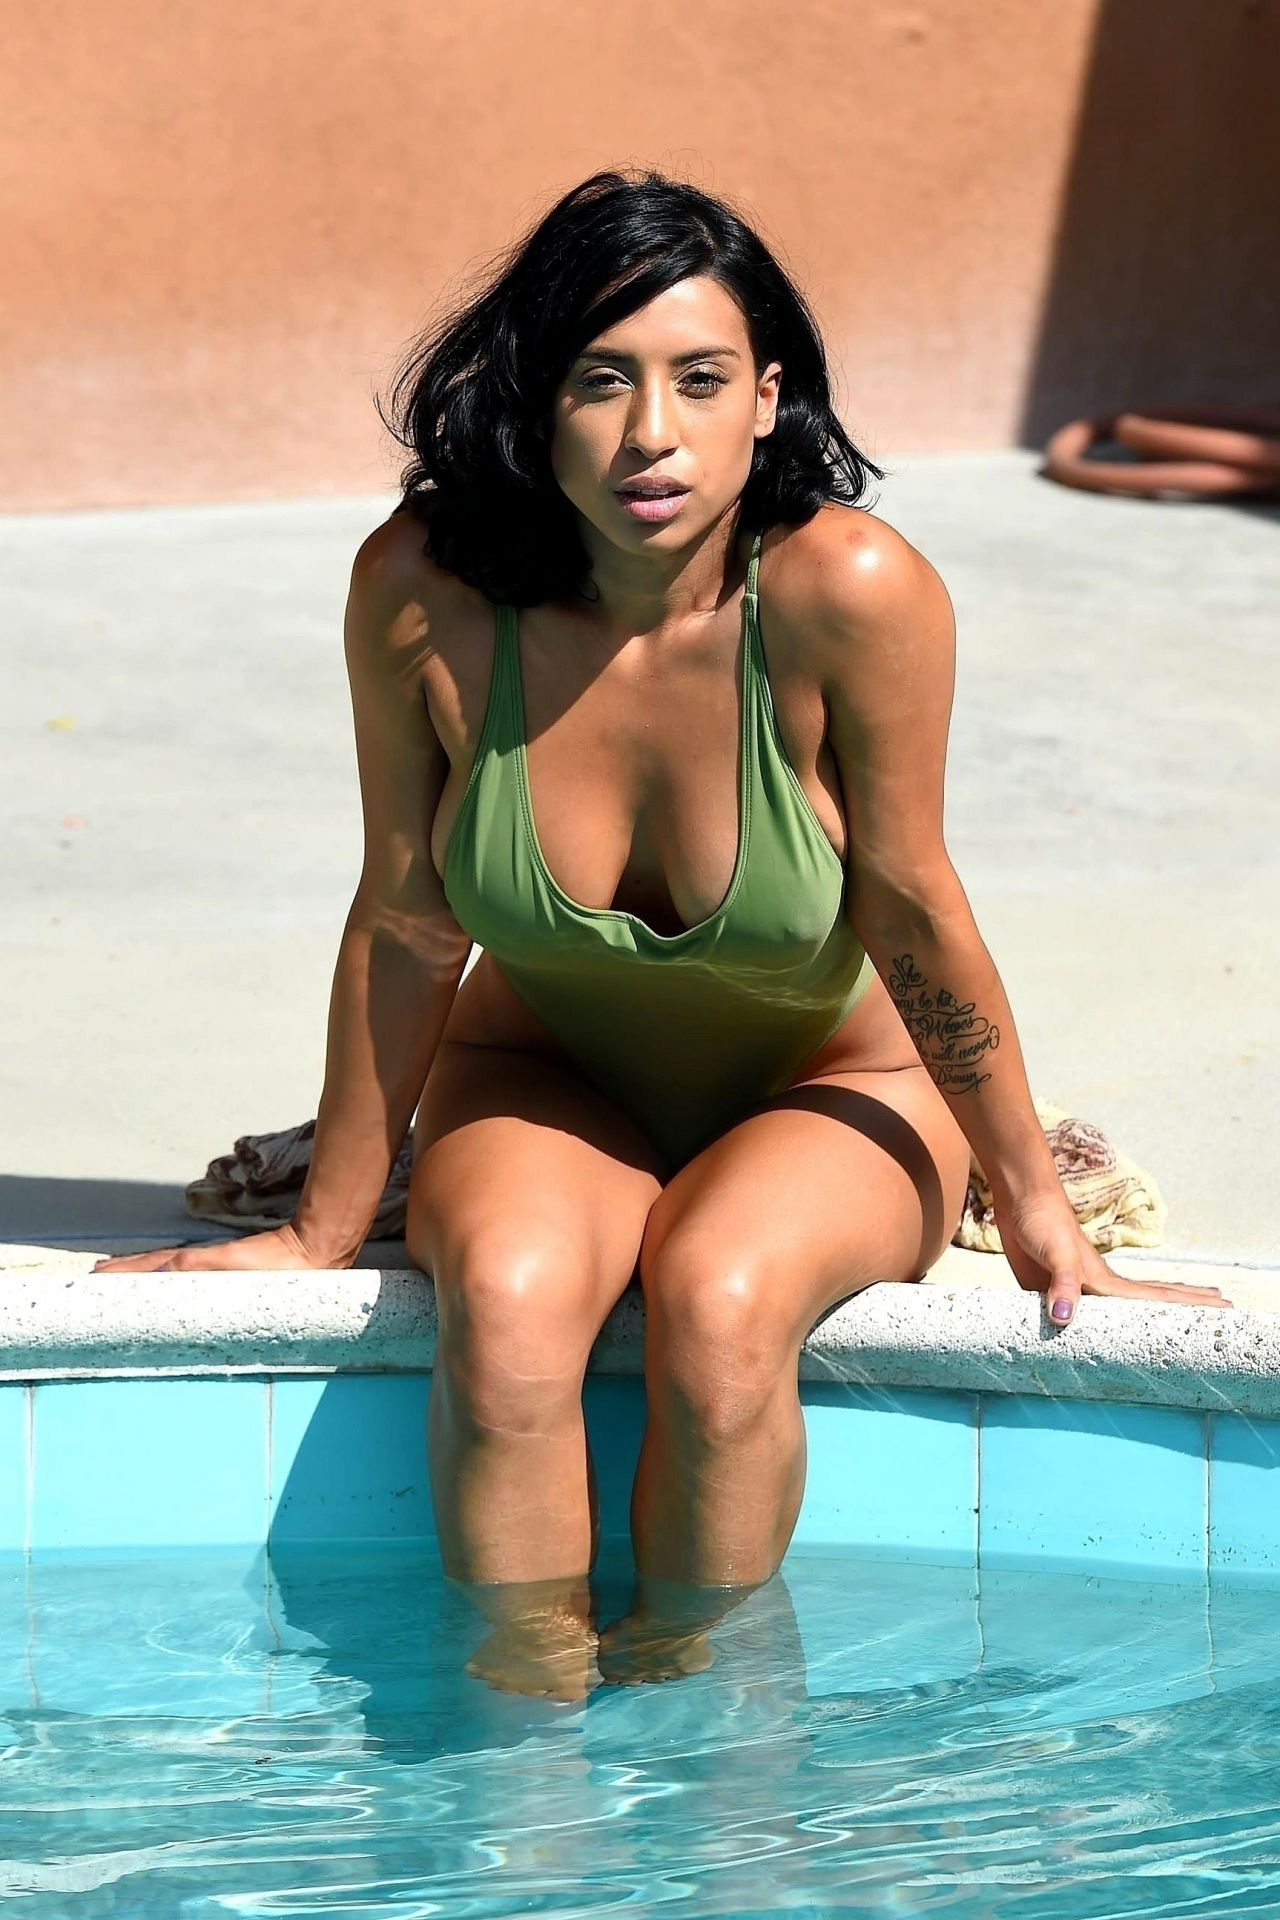 Montia Sabbag In A Green Swimsuit Pool Photoshoot At A